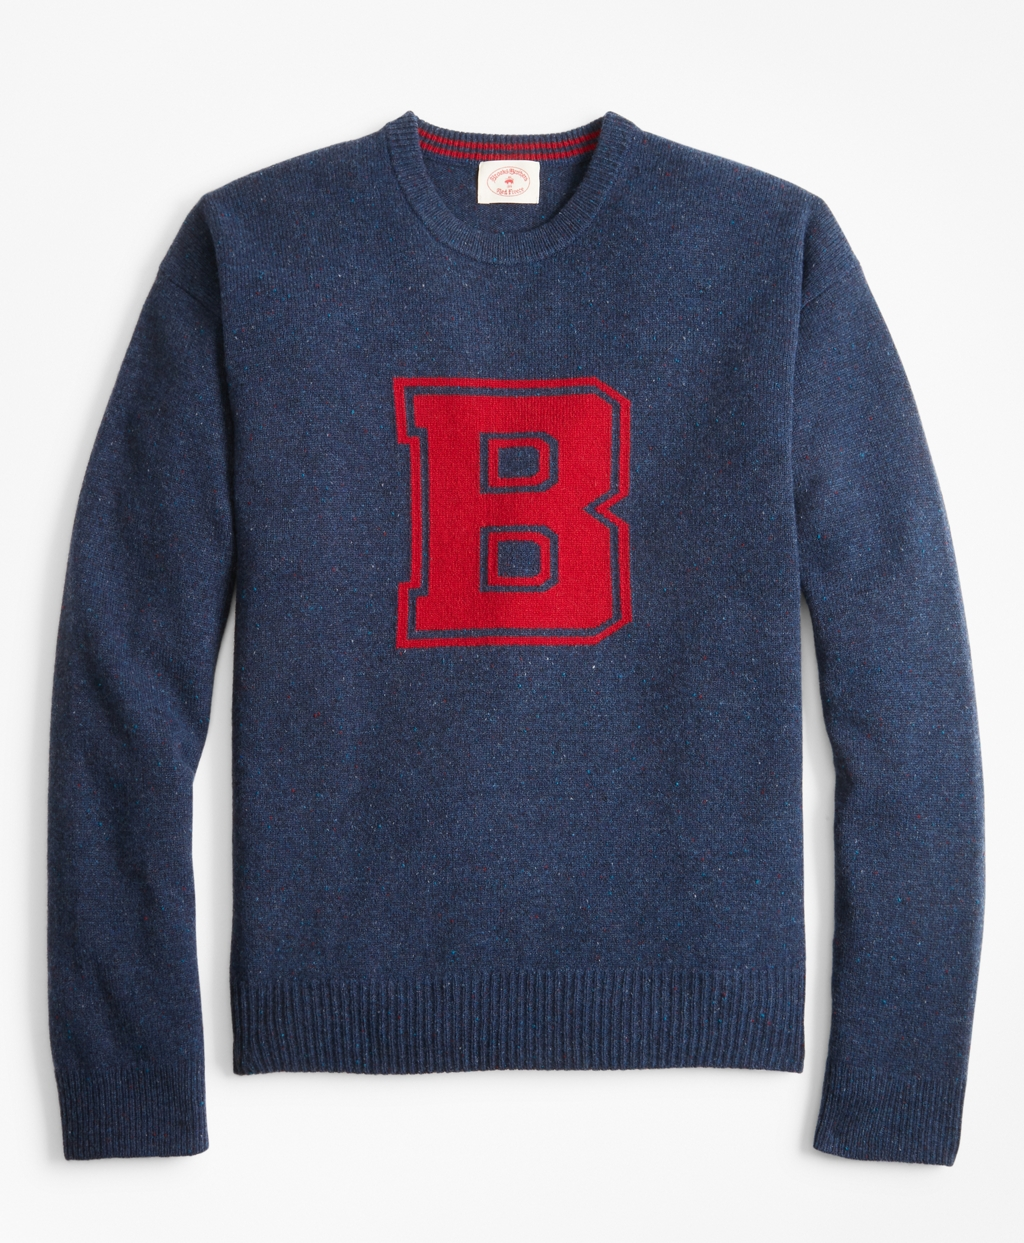 Retro Clothing for Men | Vintage Men's Fashion Brooks Brothers Mens Donegal Wool Crewneck Letter Sweater $44.75 AT vintagedancer.com